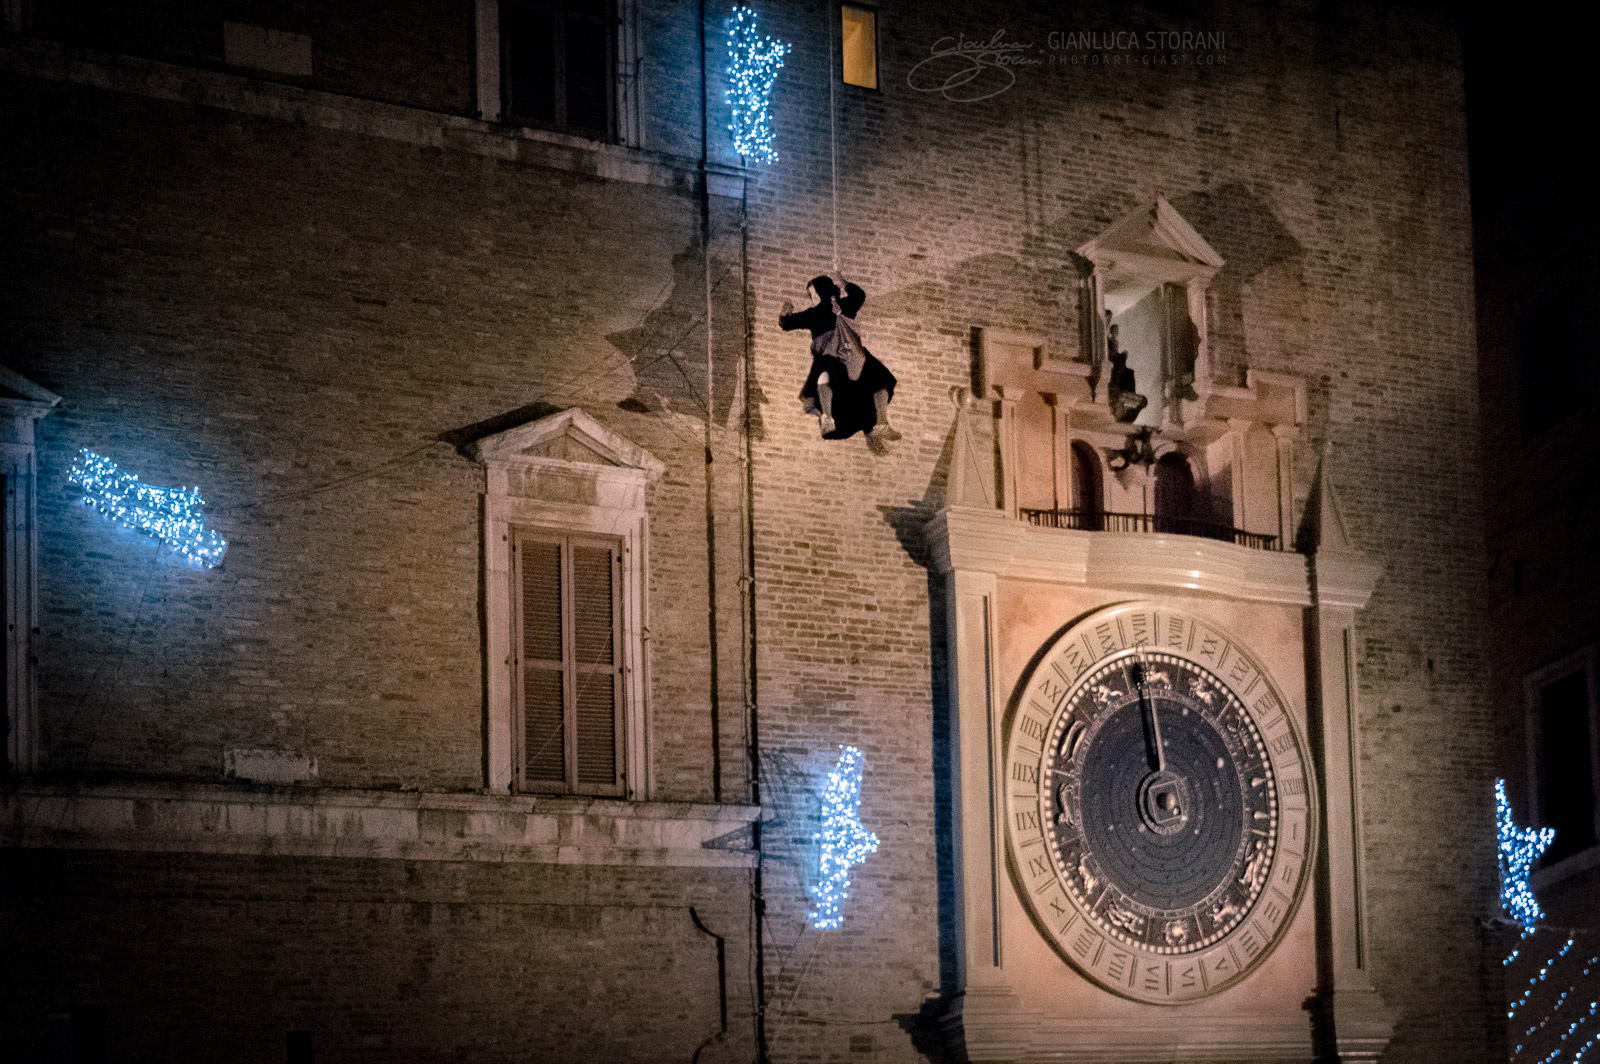 Festa della Befana 2018 di Macerata - Gianluca Storani Photo Art (ID: 4-7631)